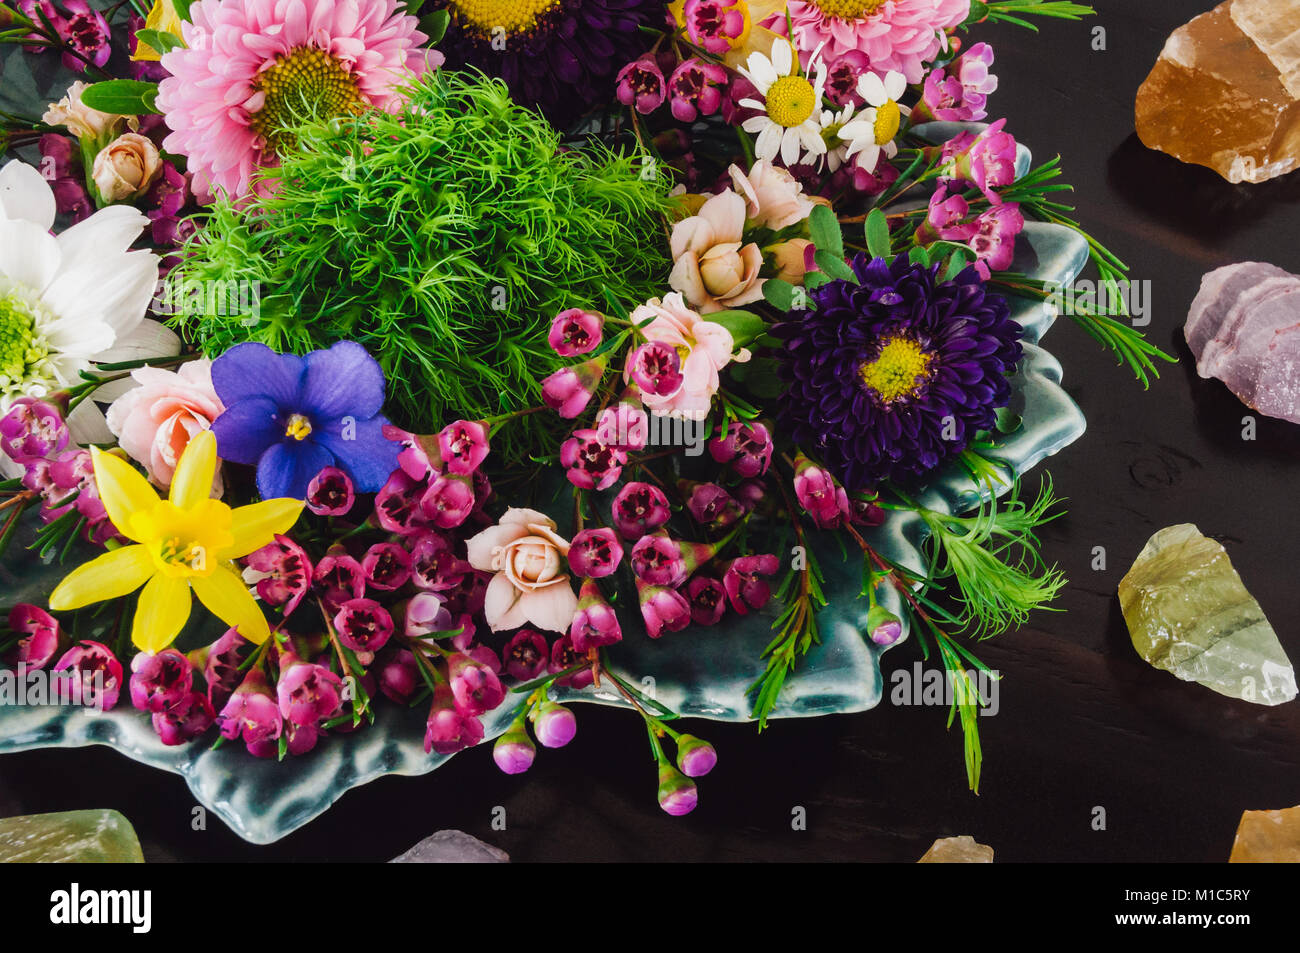 Assorted Spring Flowers on Dark Table with Honey Calcite, Amethyst and Green Calcite Stock Photo